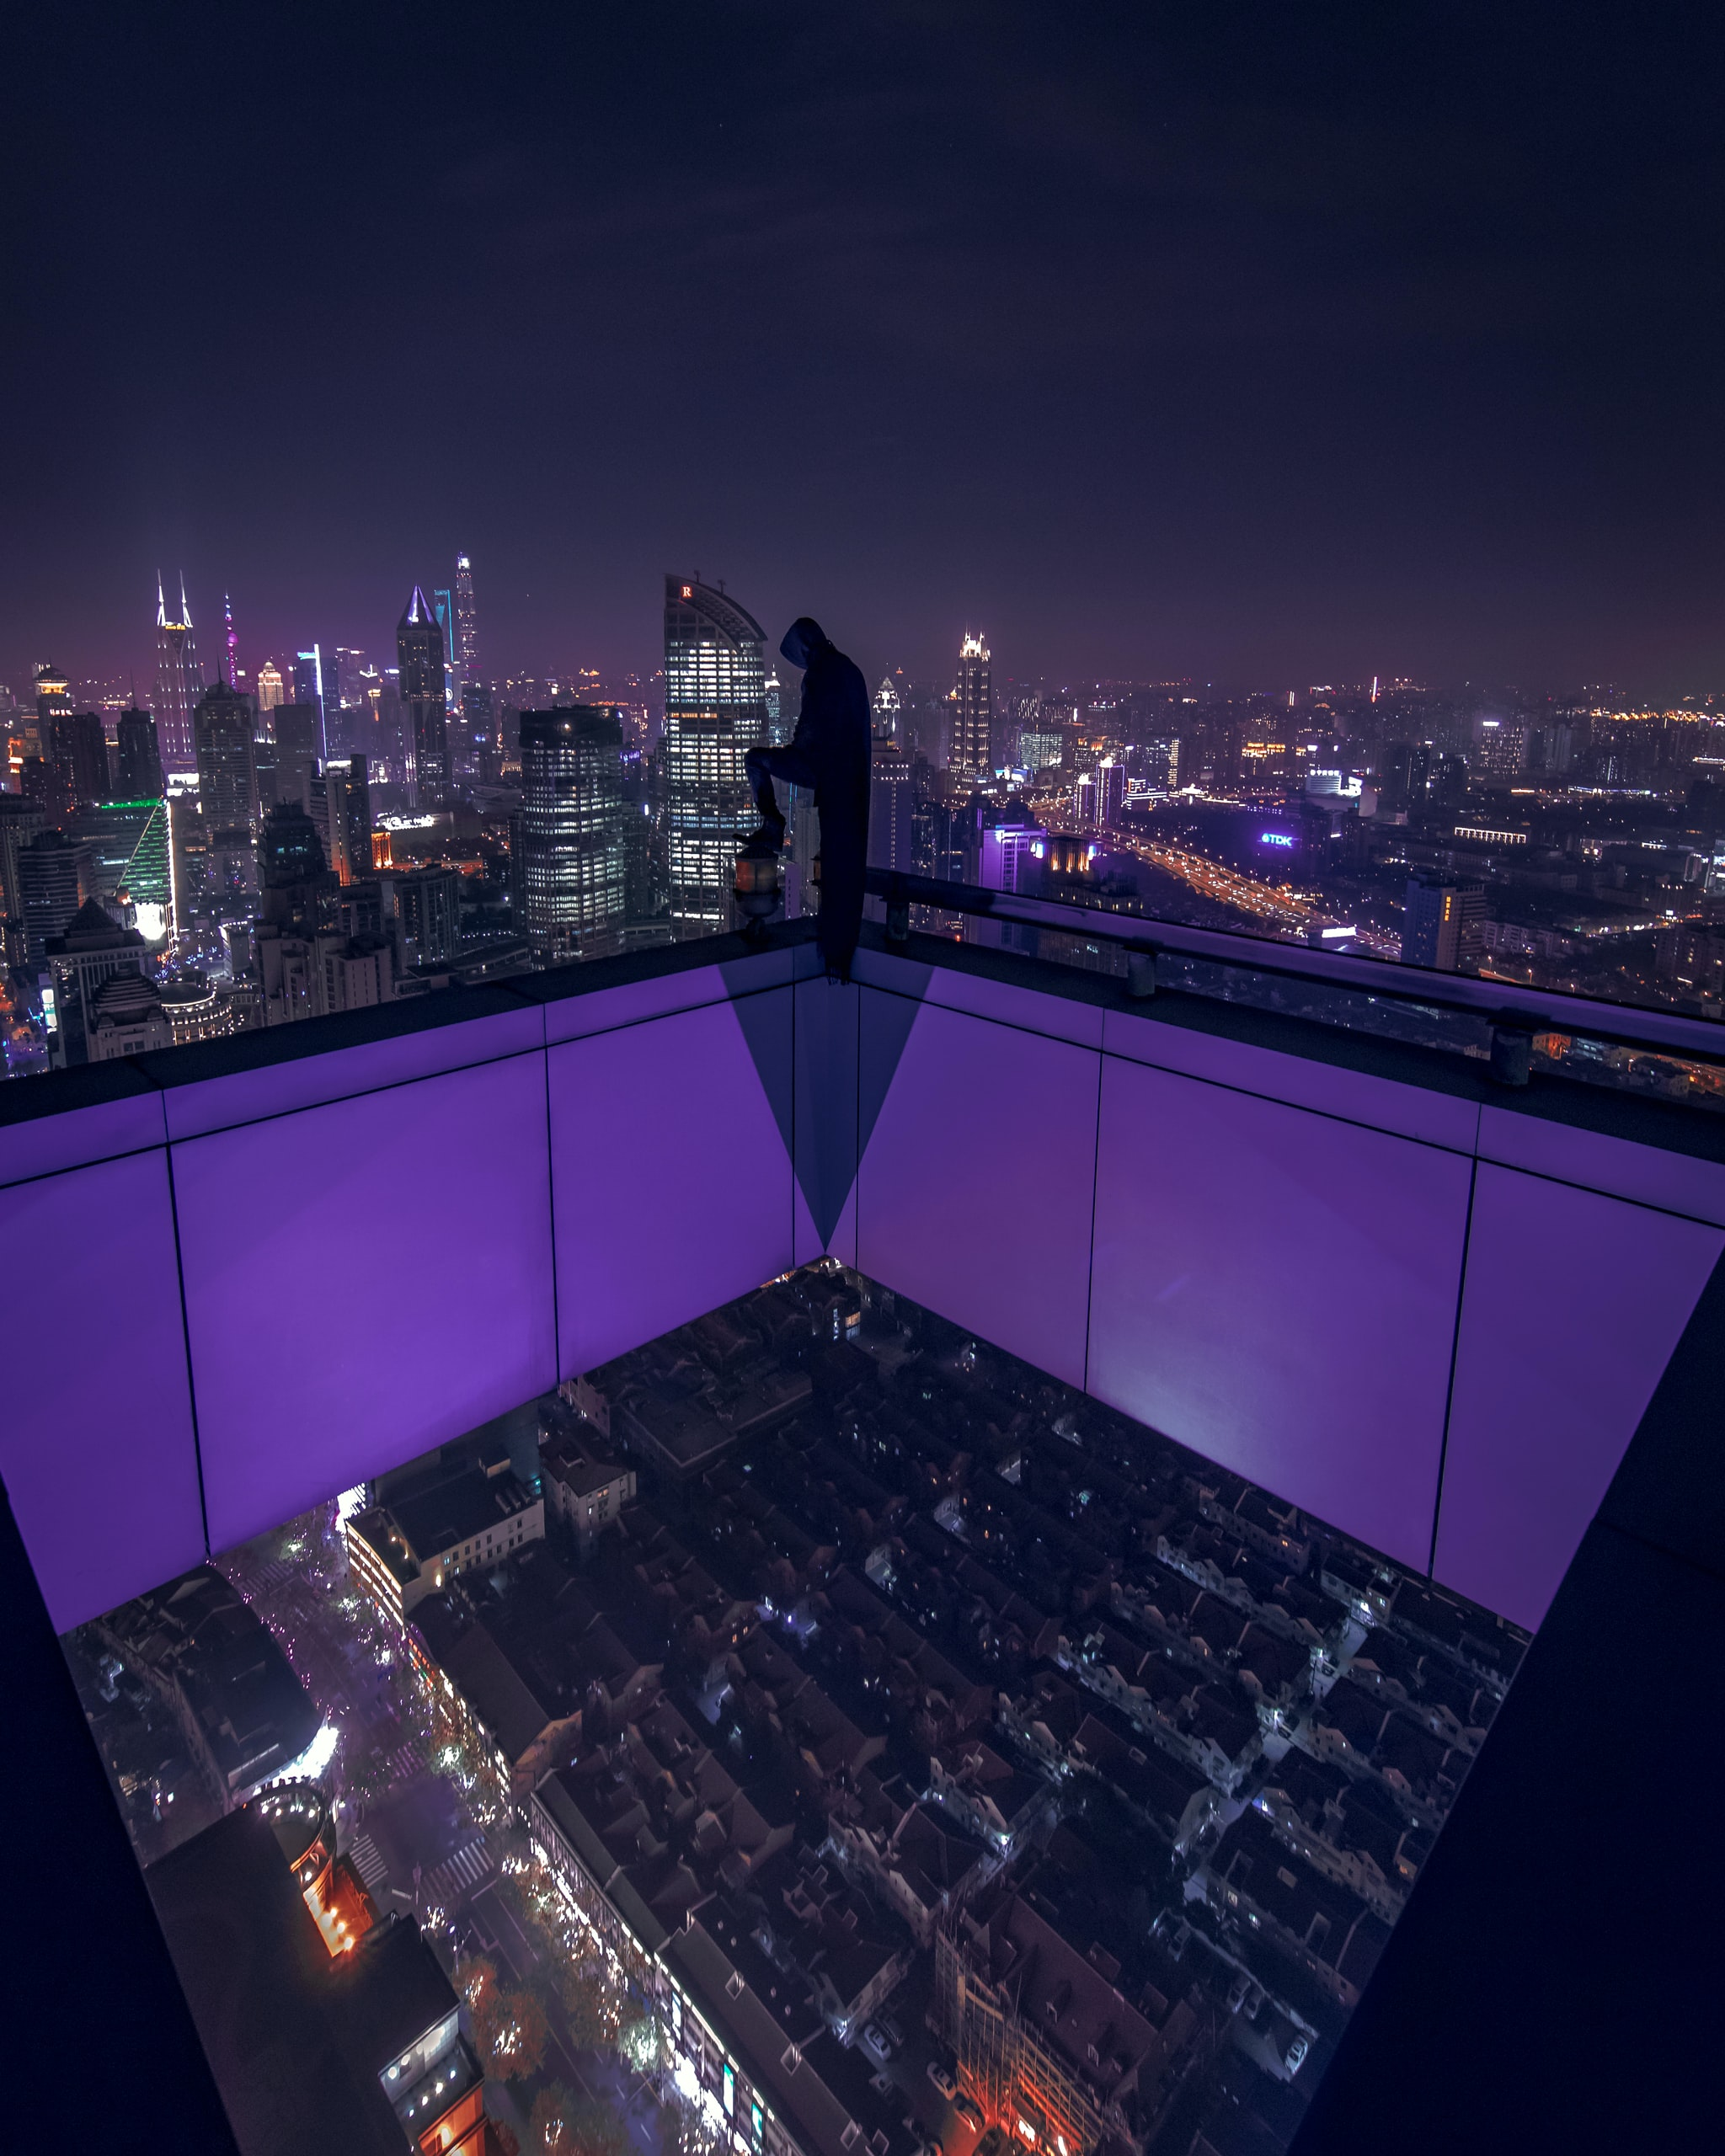 man standing on building rooftop during nigh time